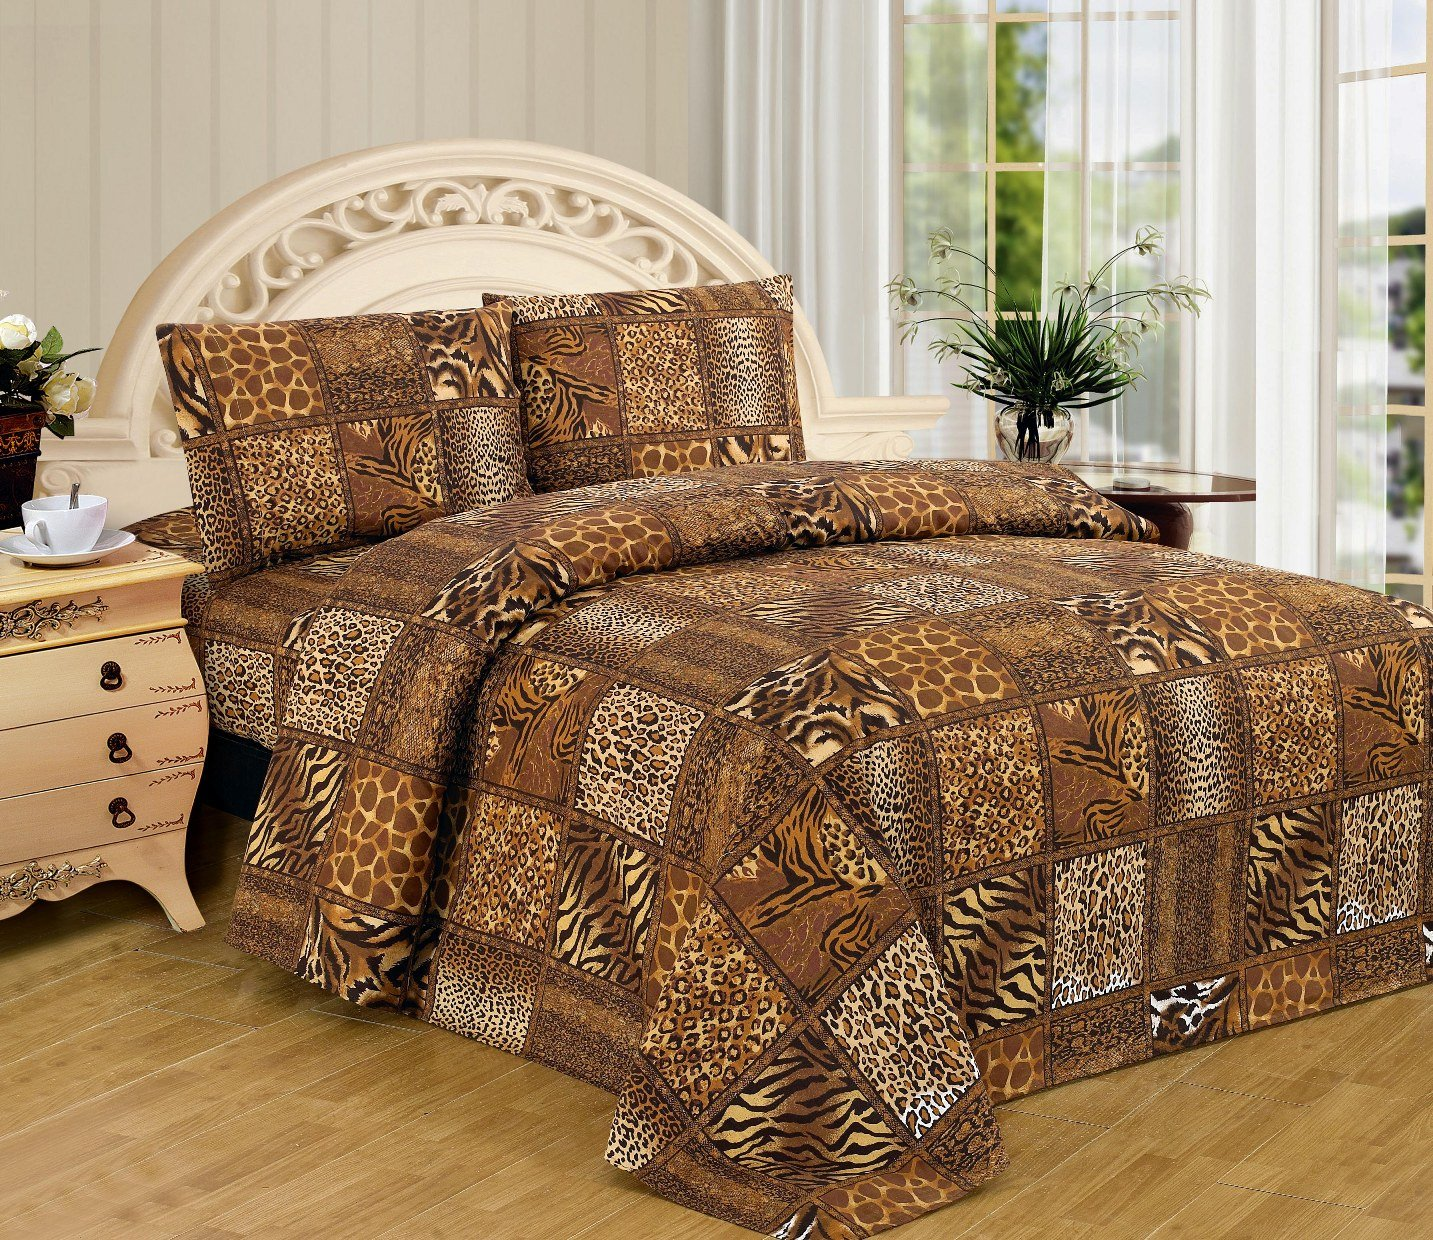 Brown Black Leopard Zebra Queen Size Sheet Set 4 Pc Safari Animal Print Pillow Shams Bedding